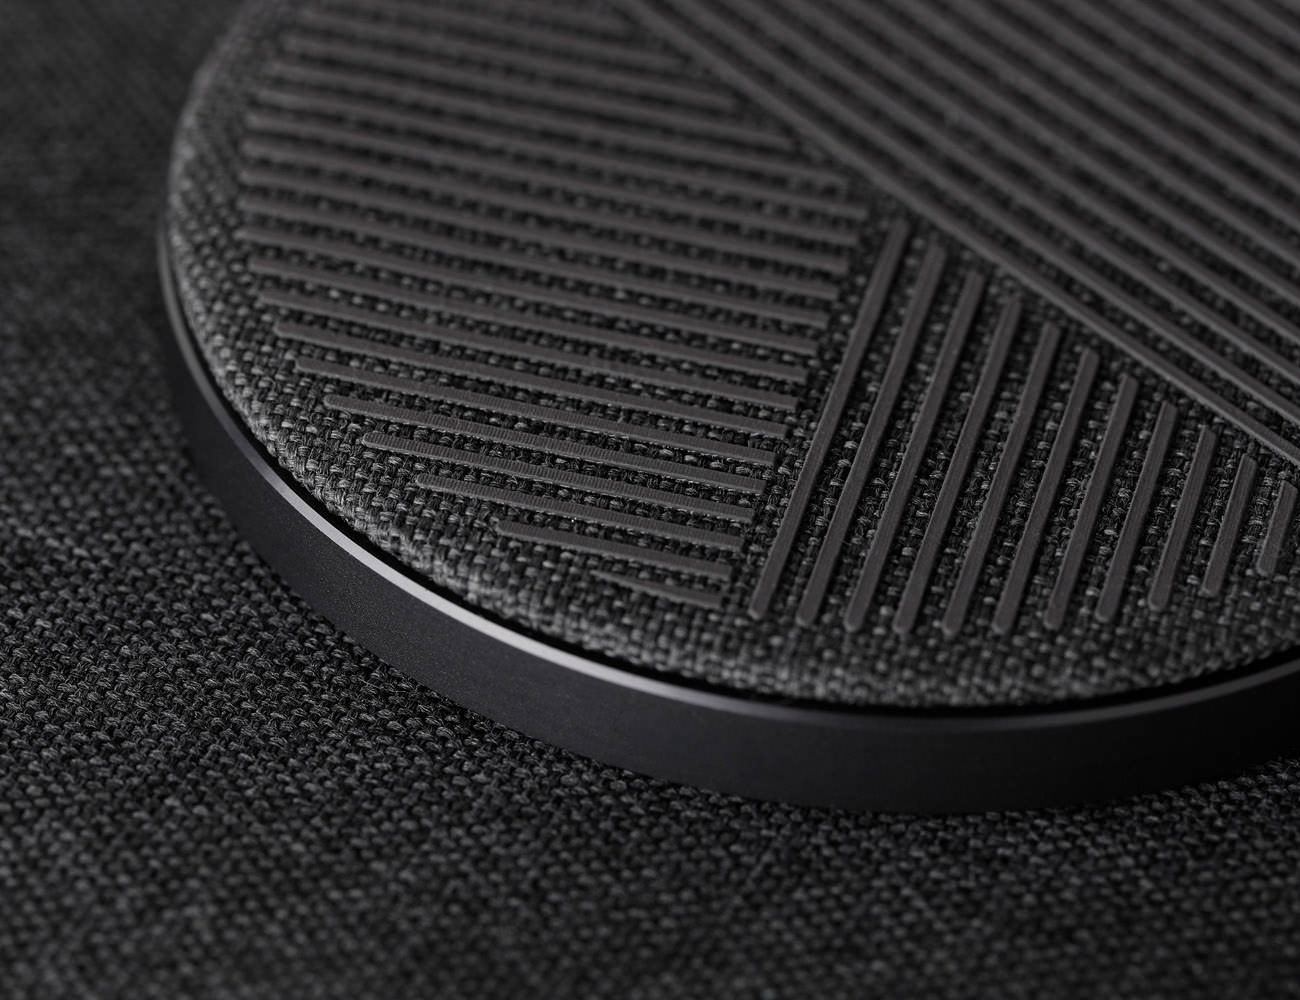 Native Union DROP Non-Slip Wireless Charger